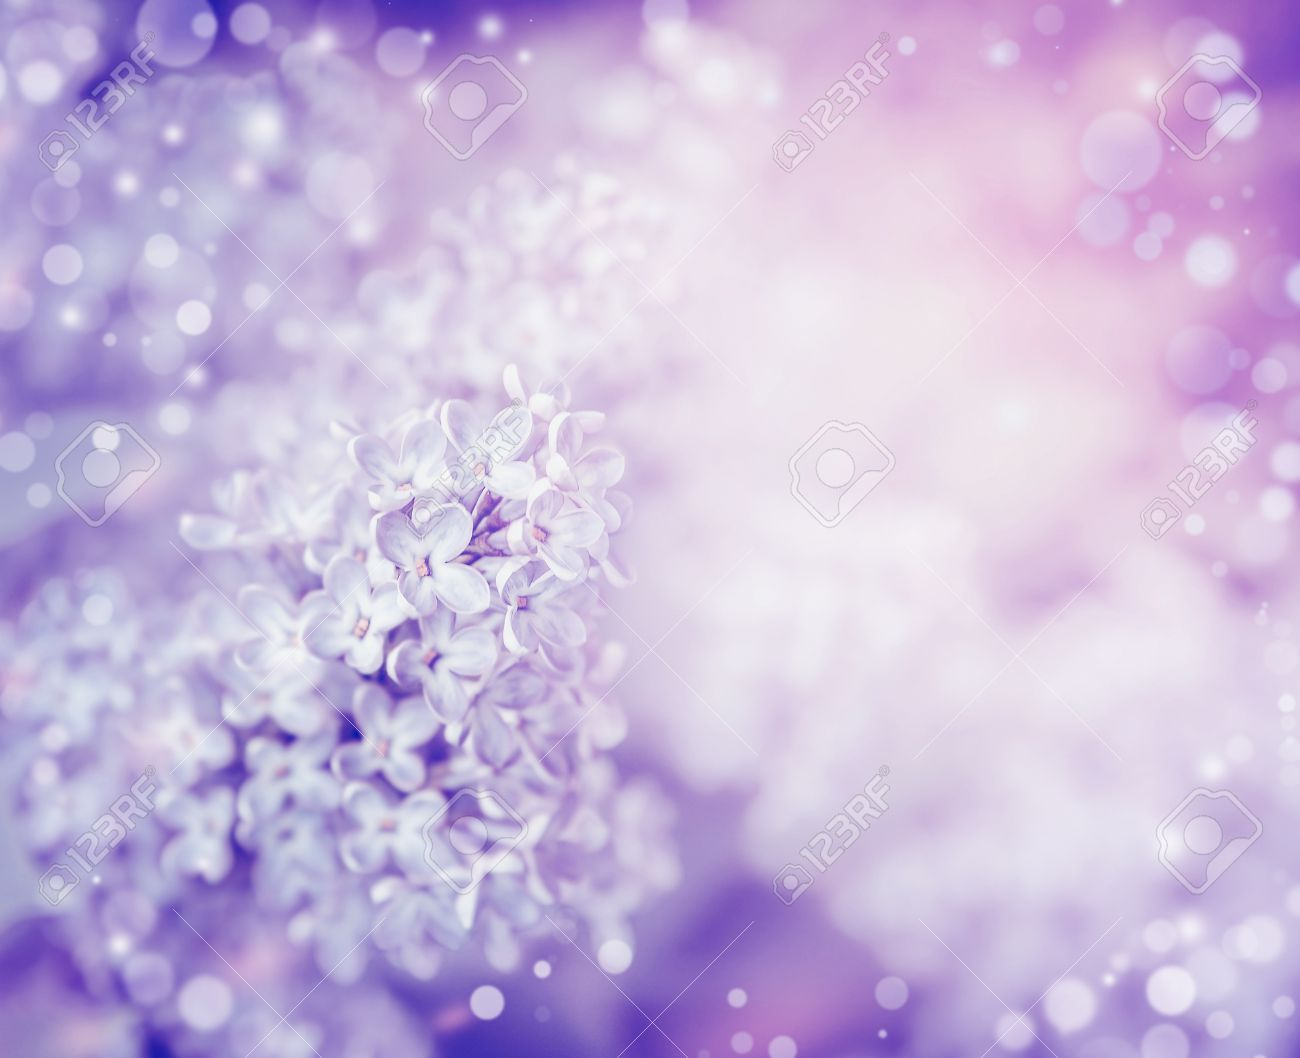 Beautiful flowers of lilac , close up. Lilac blooming background. Light pastel floral border - 54220044